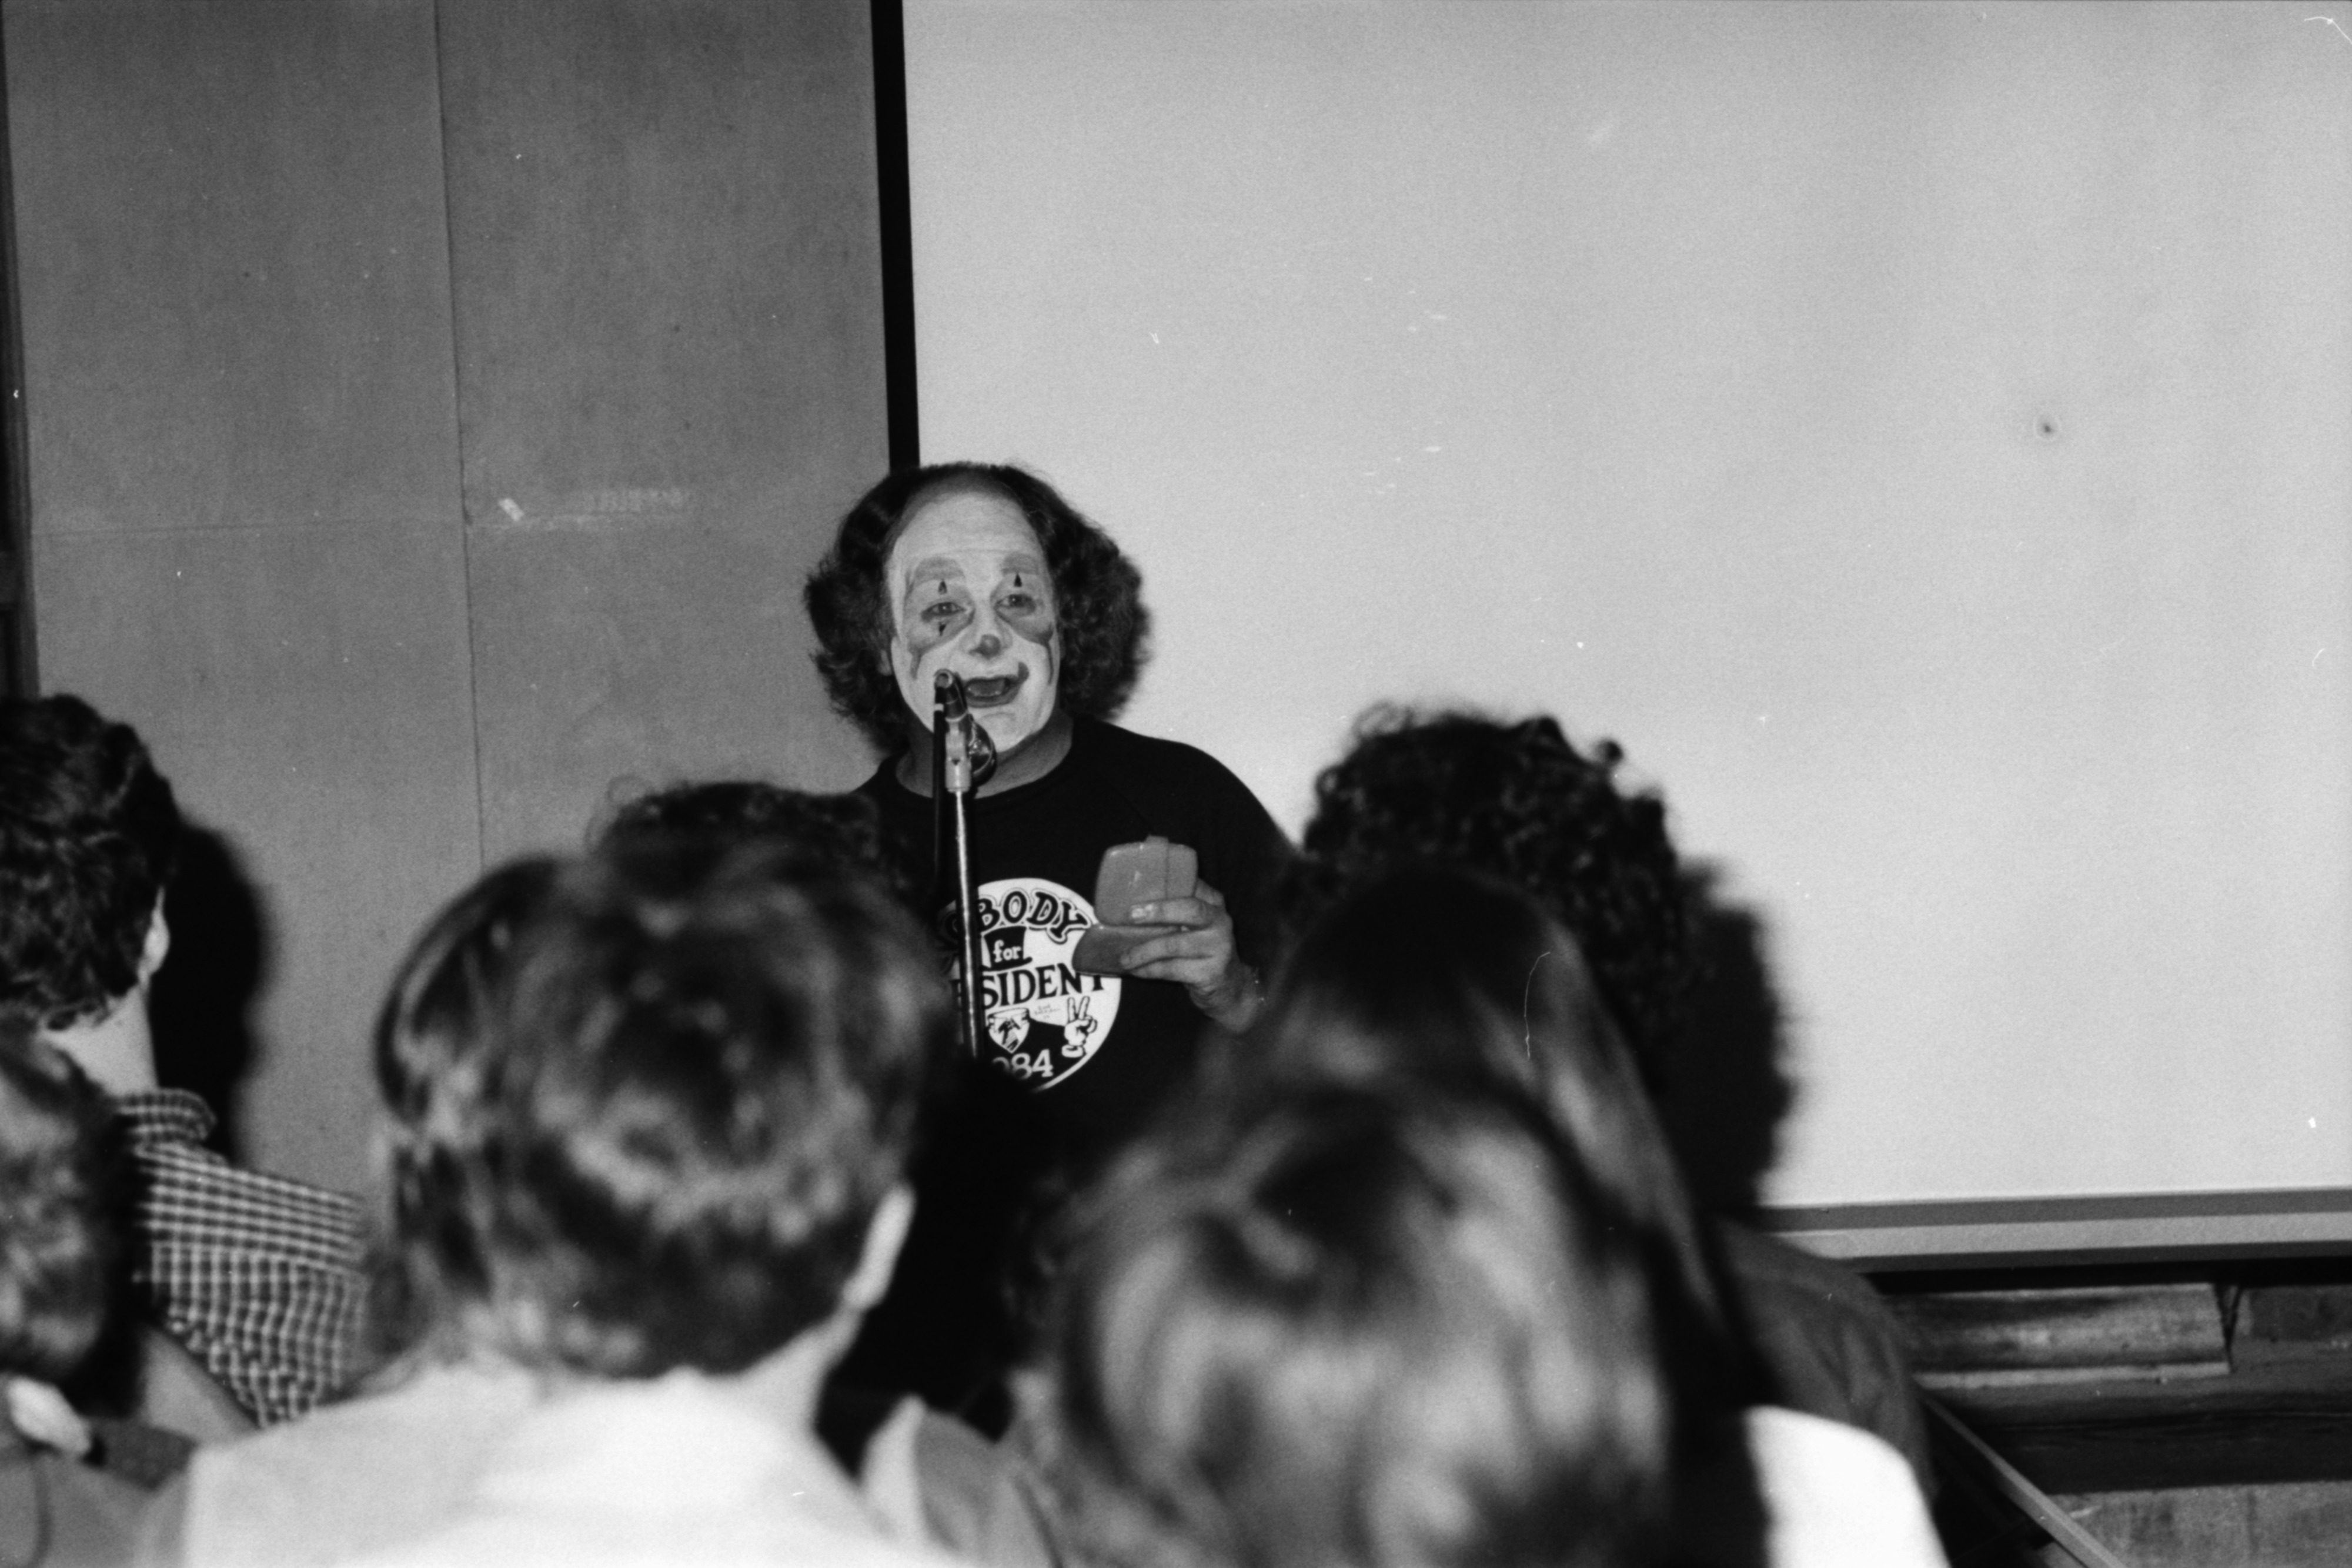 Wavy Gravy at the Michigan Union, February 1984 image